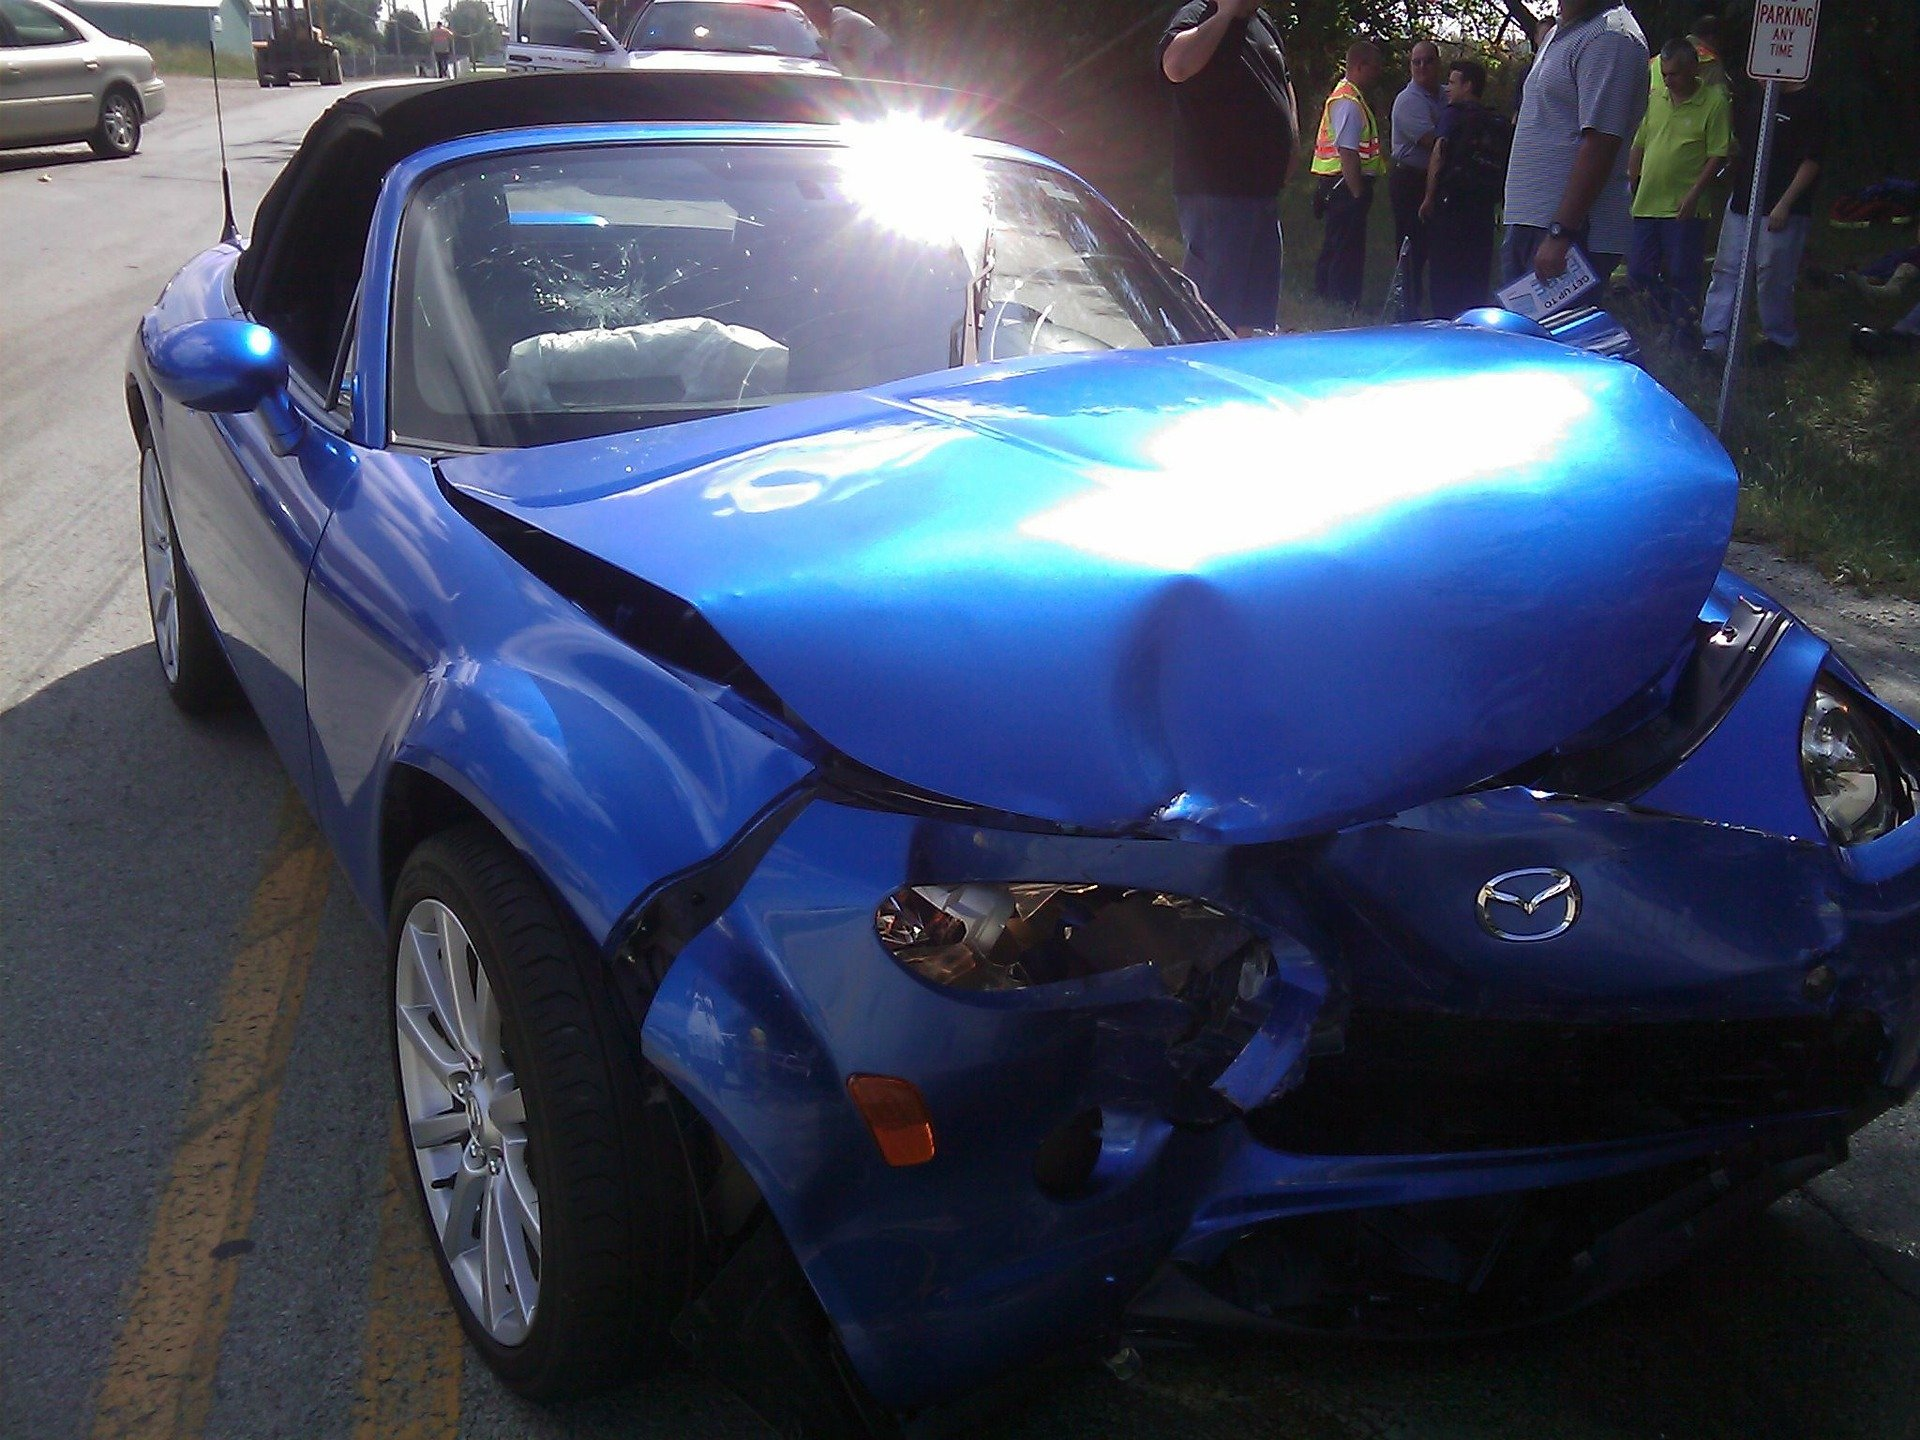 Pictured - A blue smashed vehicle following a car accident | Source: Pixabay